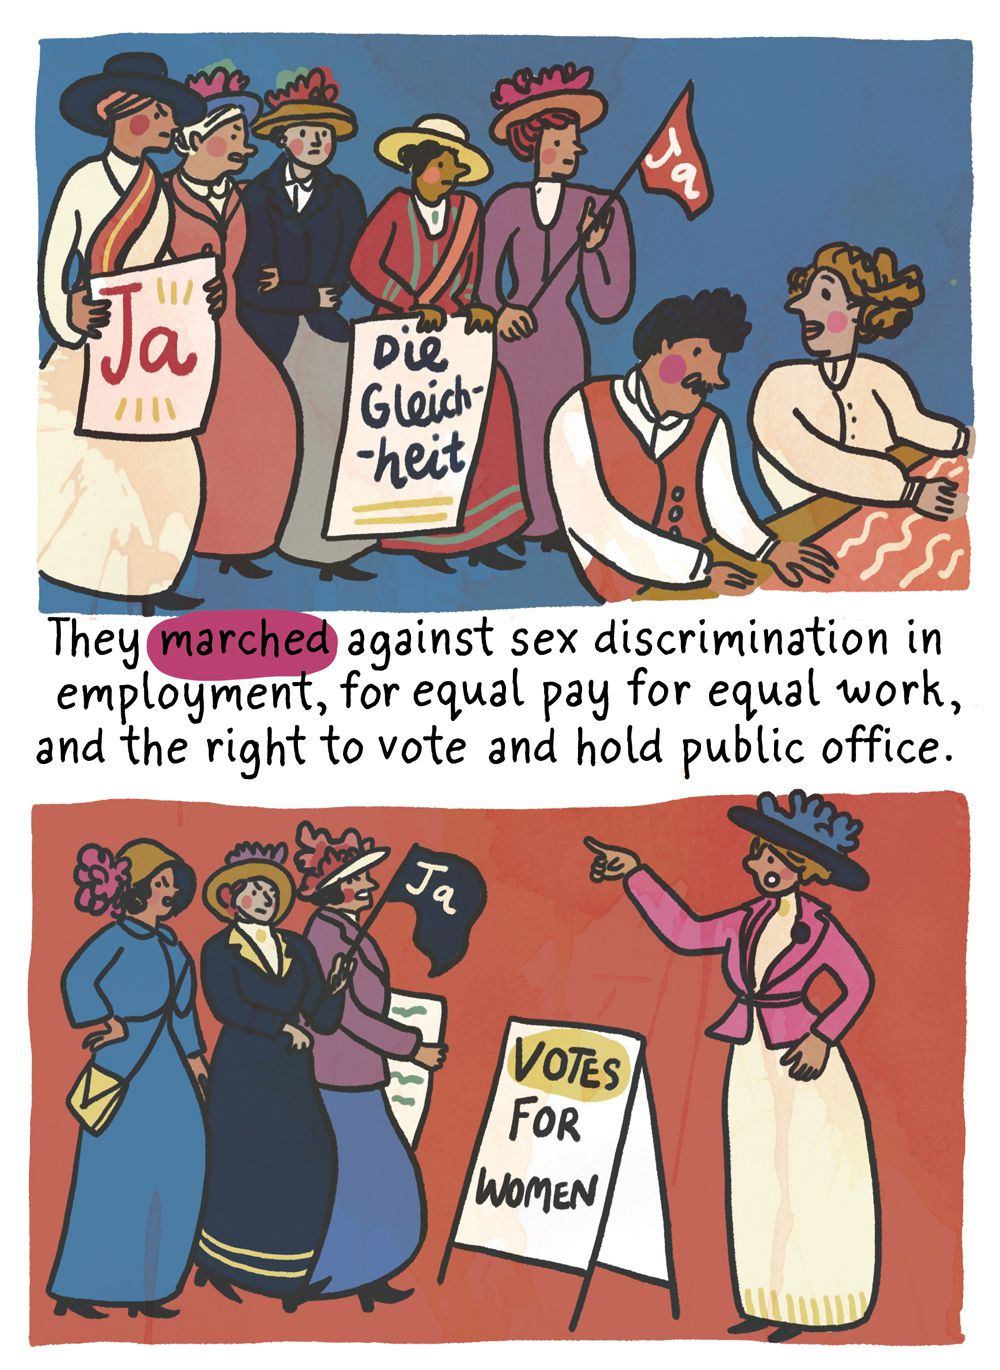 They marched against sex discrimination in employment, including equal pay for equal work, and for the right to vote and hold public office.